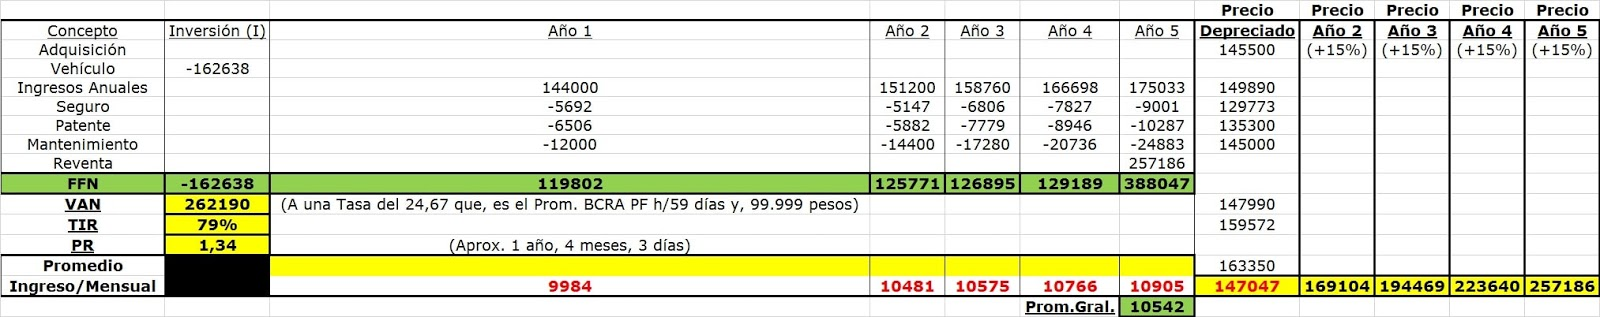 Plan de carrera alternativo - Remis - Análisis Costo/Beneficio